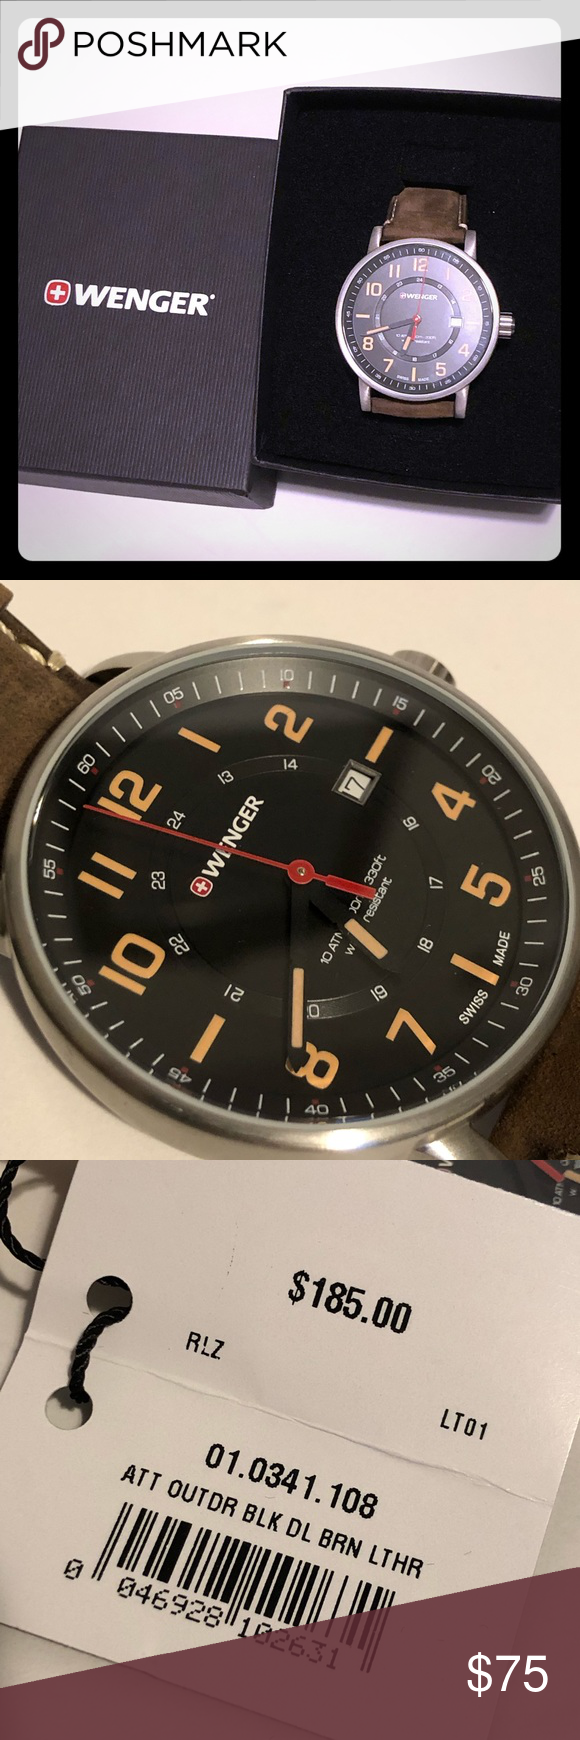 Virtuoso 8040 N Sapphire Crystal With Anti Reflective Coating Helium Valve With A Coin Edged Screw Down Crown Ensures Water Res Virtuoso Chrono Quartz Movement